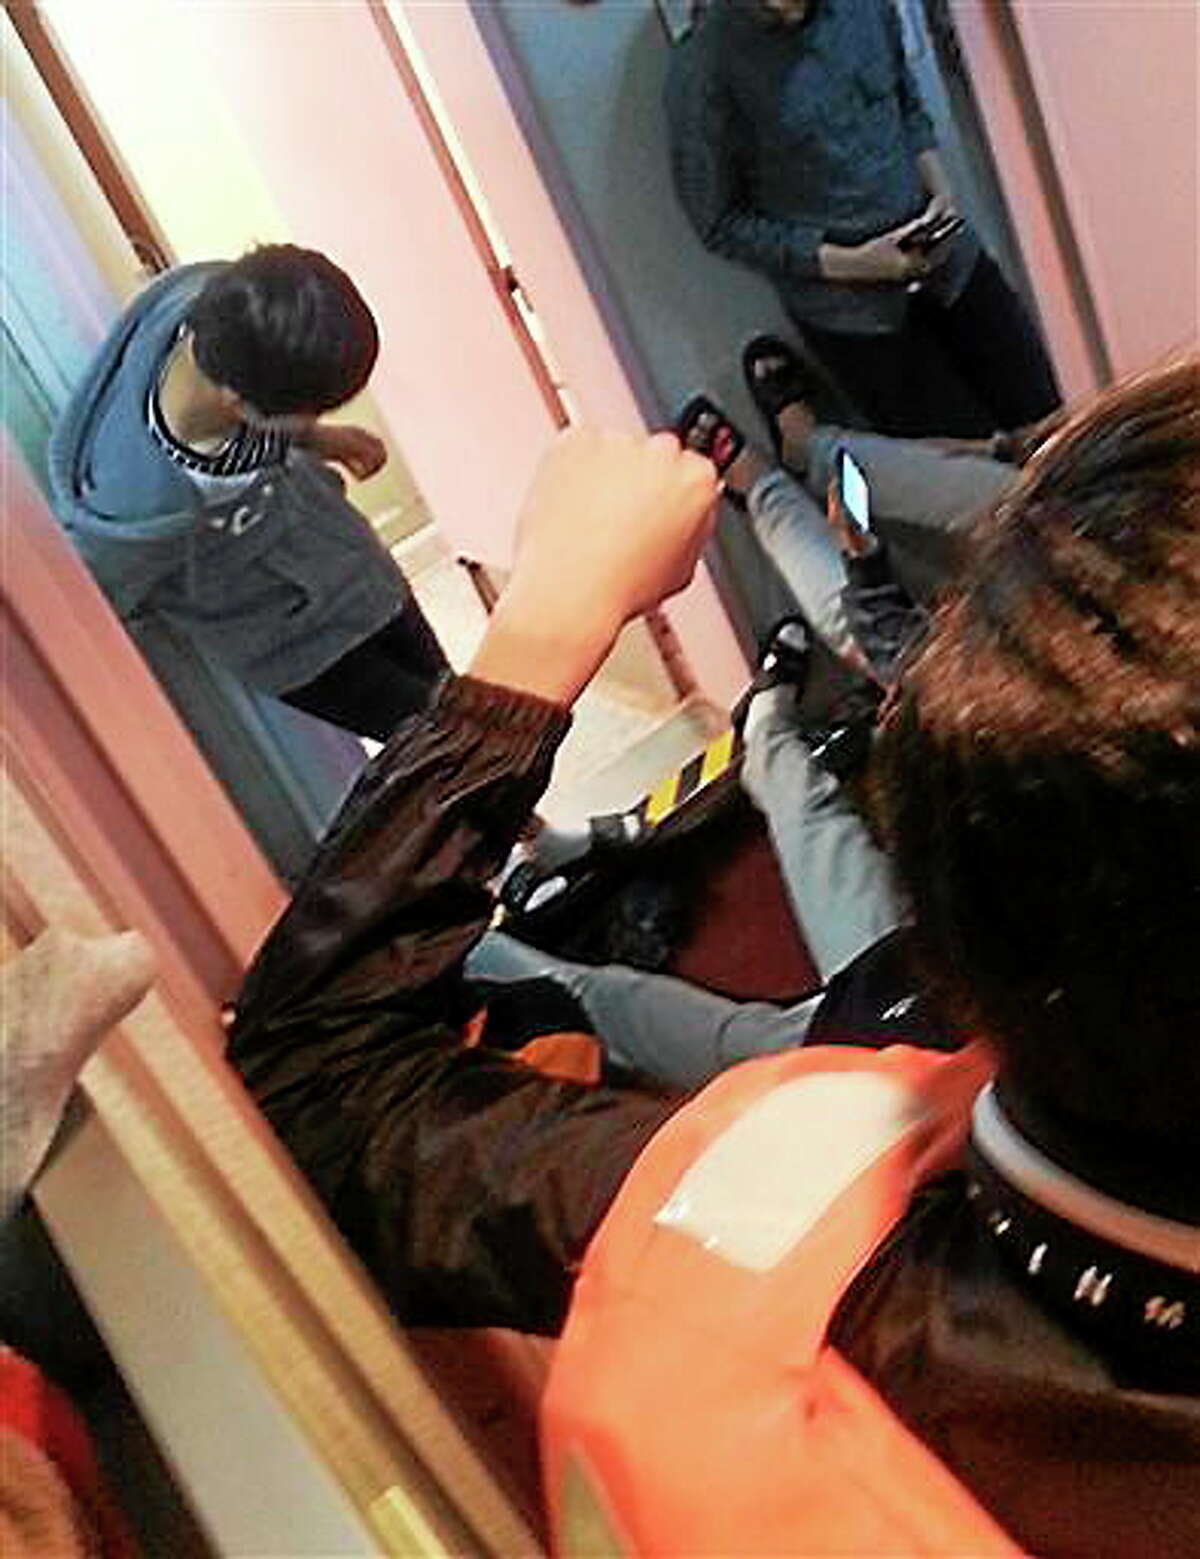 In this April 16, 2014 photo taken from the mobile phone of deceased South Korean high school student Park Su-hyeon and released by his father Park Jong-dae, students are shown inside the sinking ferry Sewol on waters near Jindo, South Korea. Soon after the ferry begins to tilt, nervous laughter can be heard from the high school students huddled below deck. In video clips from the cellphone of Park Su-hyeon, a victim of the disaster that has shaken South Korea, the teenagers talk of taking selfies, wonder if they'll make the news and discuss posting about the excitement later on Facebook. (AP Photo/Park Su-hyeon courtesy of the Park Family)